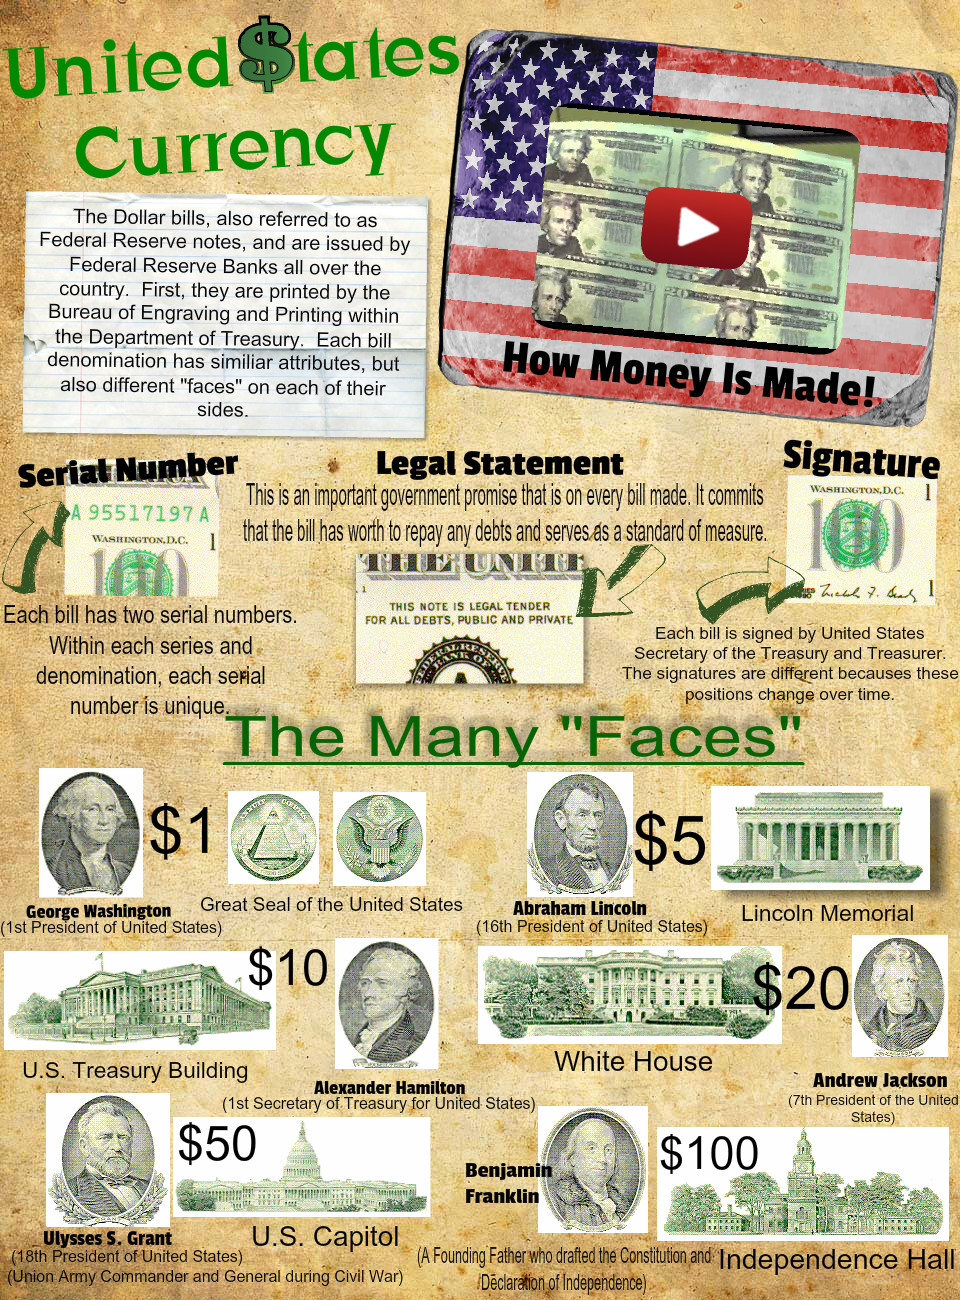 United States Currency: american, bills, bucks, cash, currency